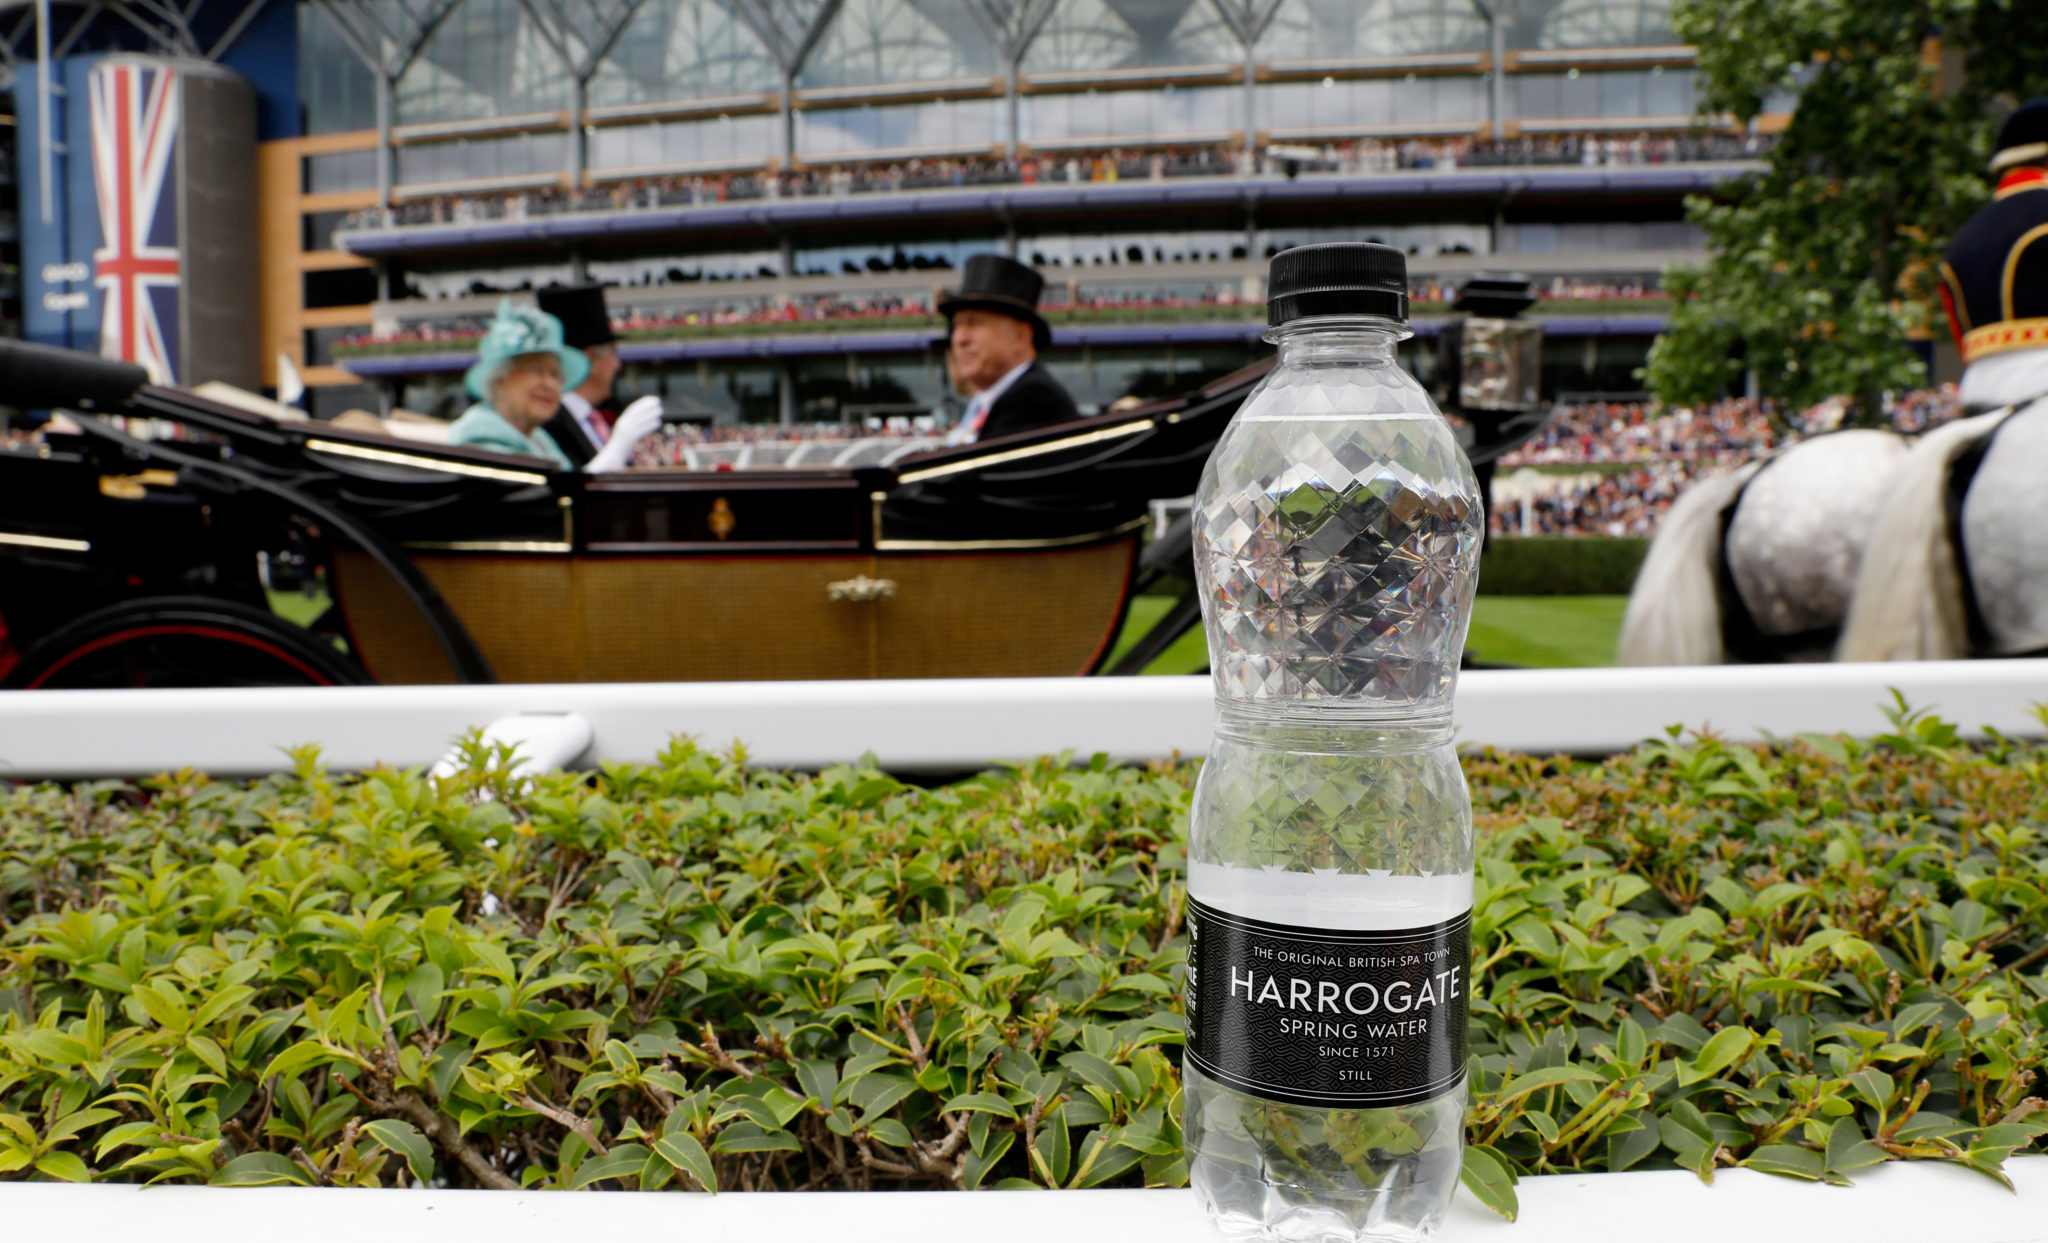 Harrogate Spring at Royal Ascot